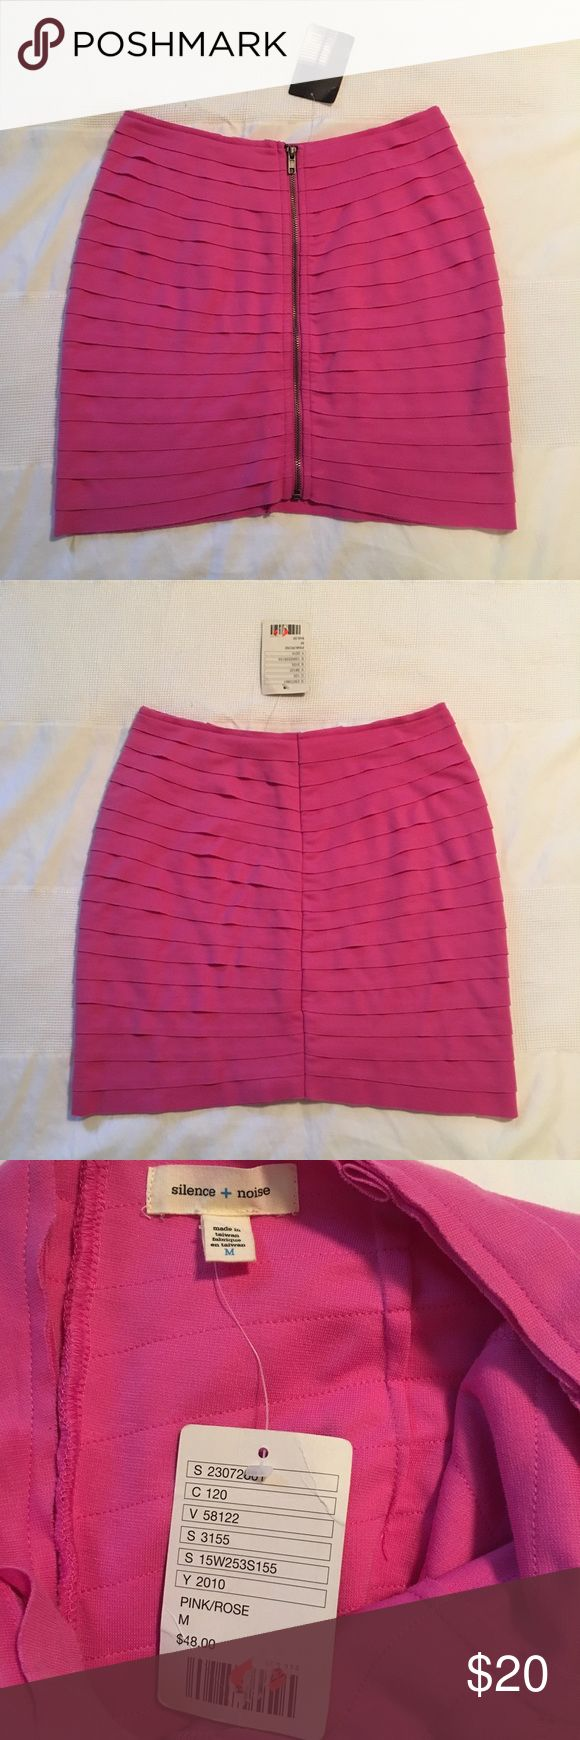 NEW Silence + Noise Zipper Front Mini Skirt Brand new with tag! Size M. Silence + Noise from Urban Outfitters. Cute layers bodycon mini skirt with zipper front. Tag says Pink/Rose, but it is a pretty pinkish almost purple color. PLEASE NOTE: The skirt appears brighter because of the lighting. It is not quite as bright in person. Gorgeous color! Skirt is fully lined. Model picture shows how it looks on in a different color :) Originally $48, but purchased on sale for $20-25. Length will vary…